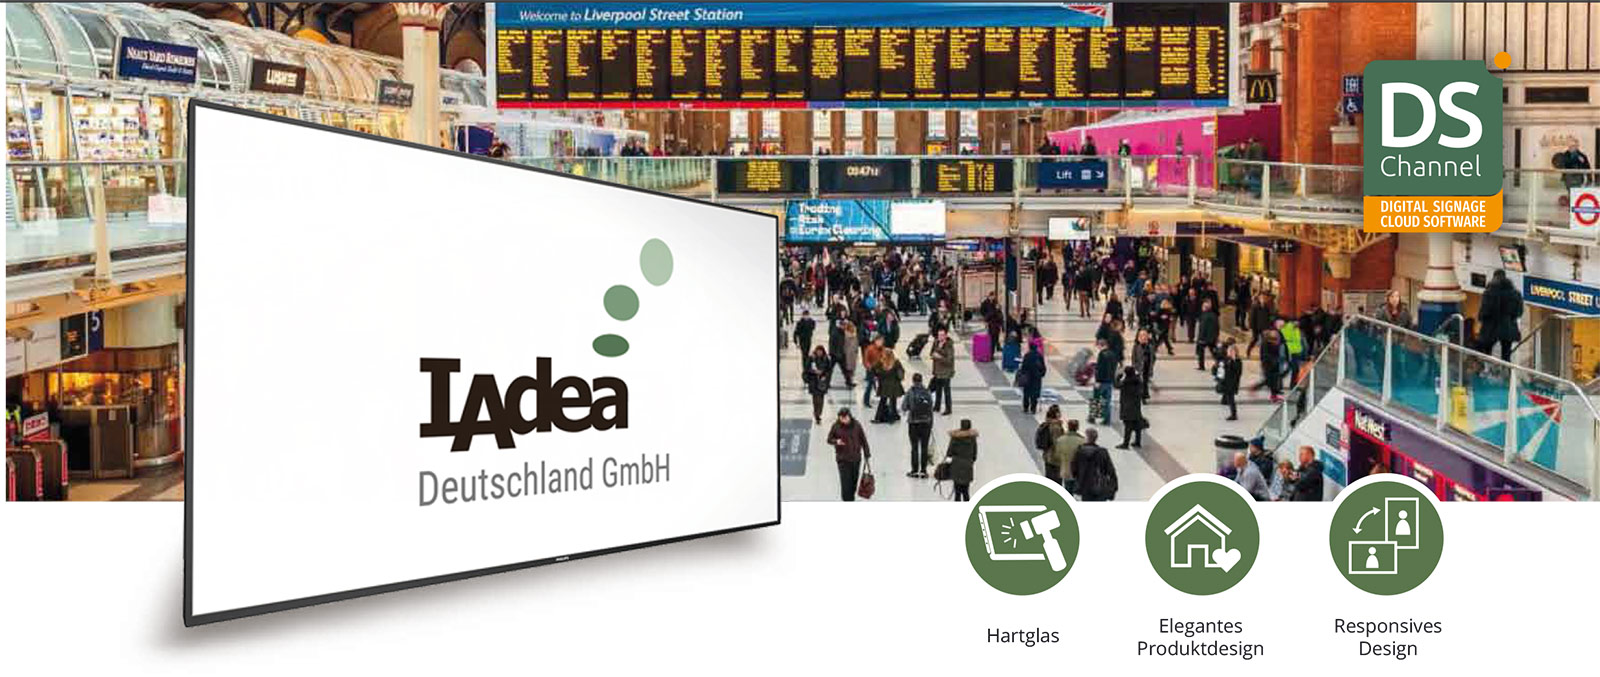 IAdea Deutschland Smart Signboard 65 4K Cloud